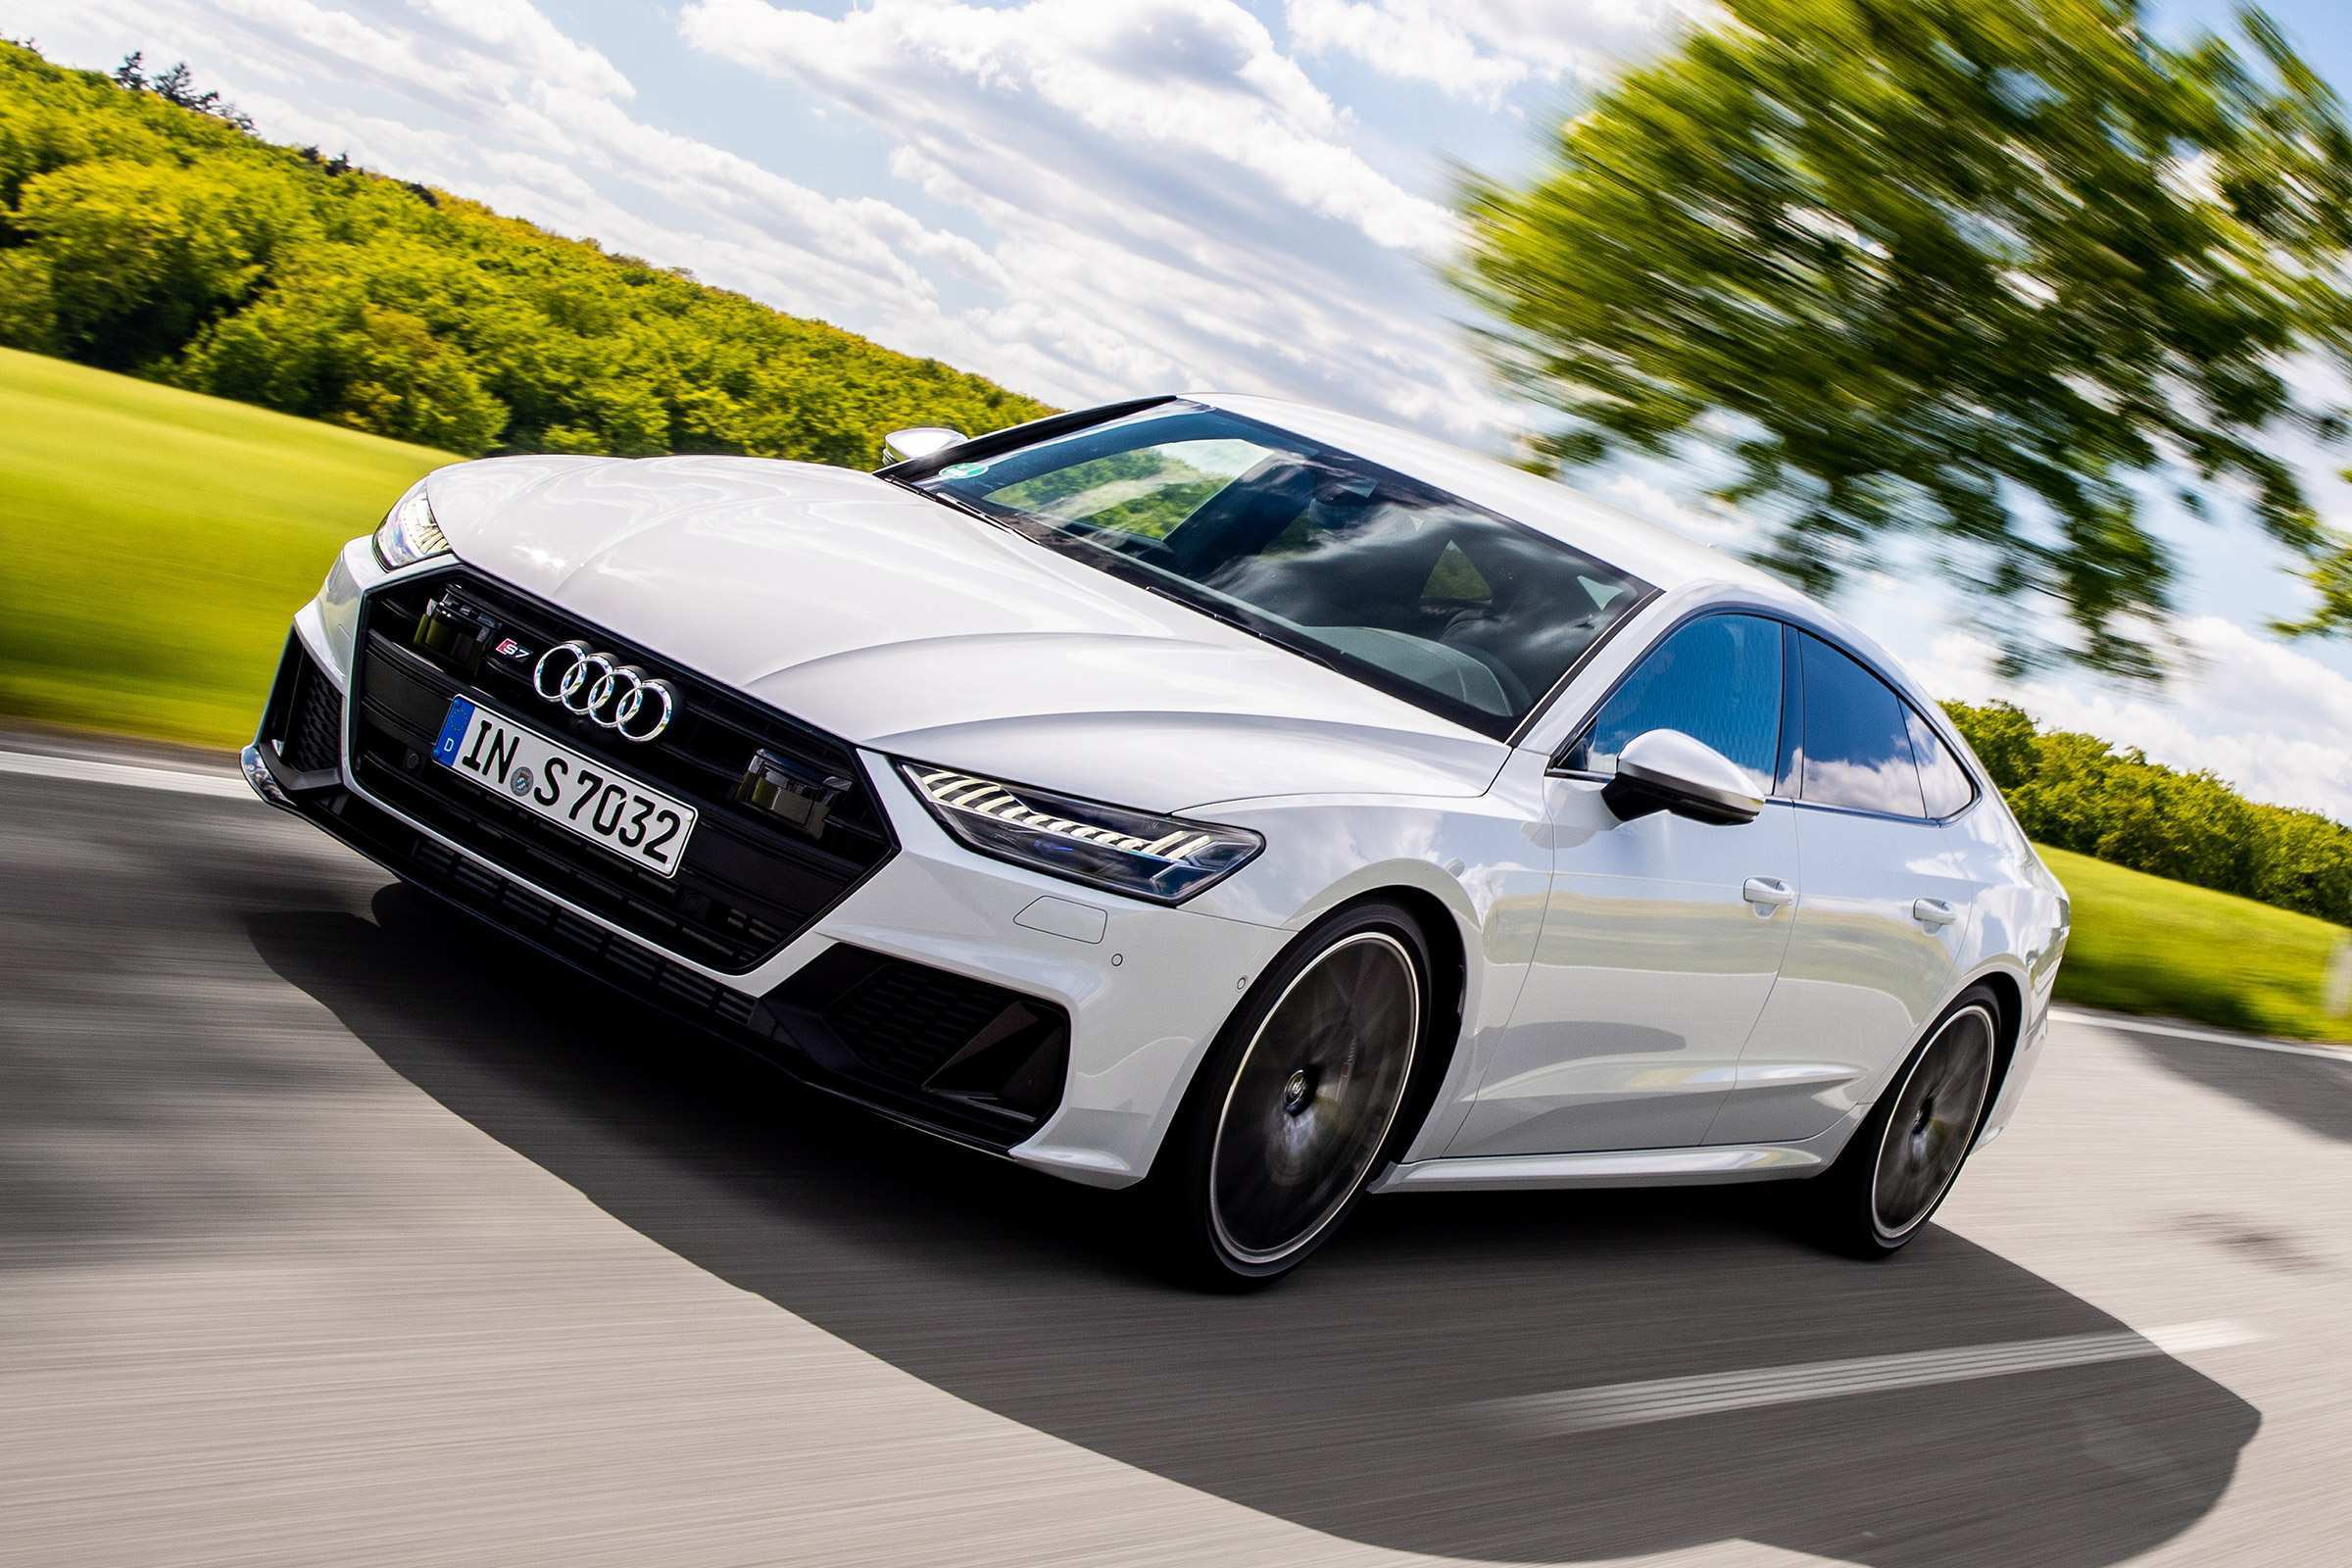 56 The Best 2019 Audi S7 Price And Release Date